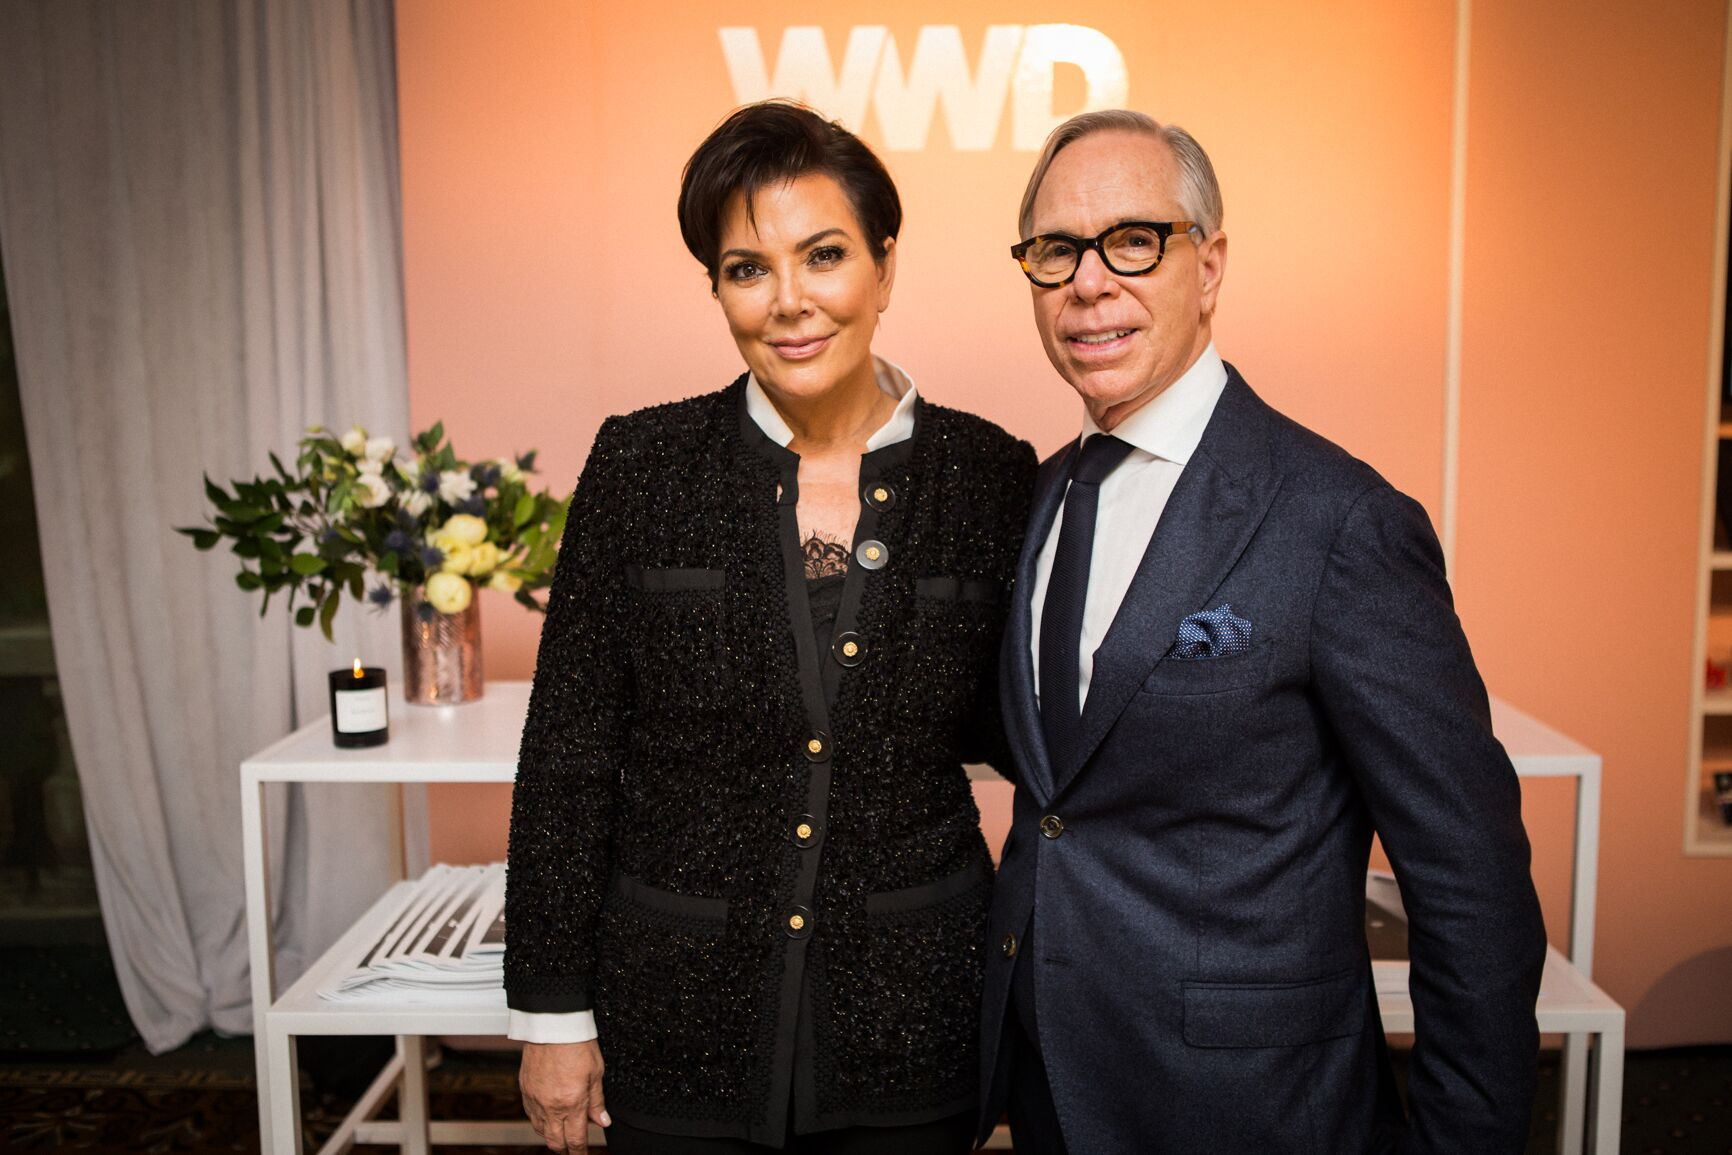 Kris Jenner_Tommy Hilfiger (Credit - Patrick Macleod_WWD)_preview.jpeg